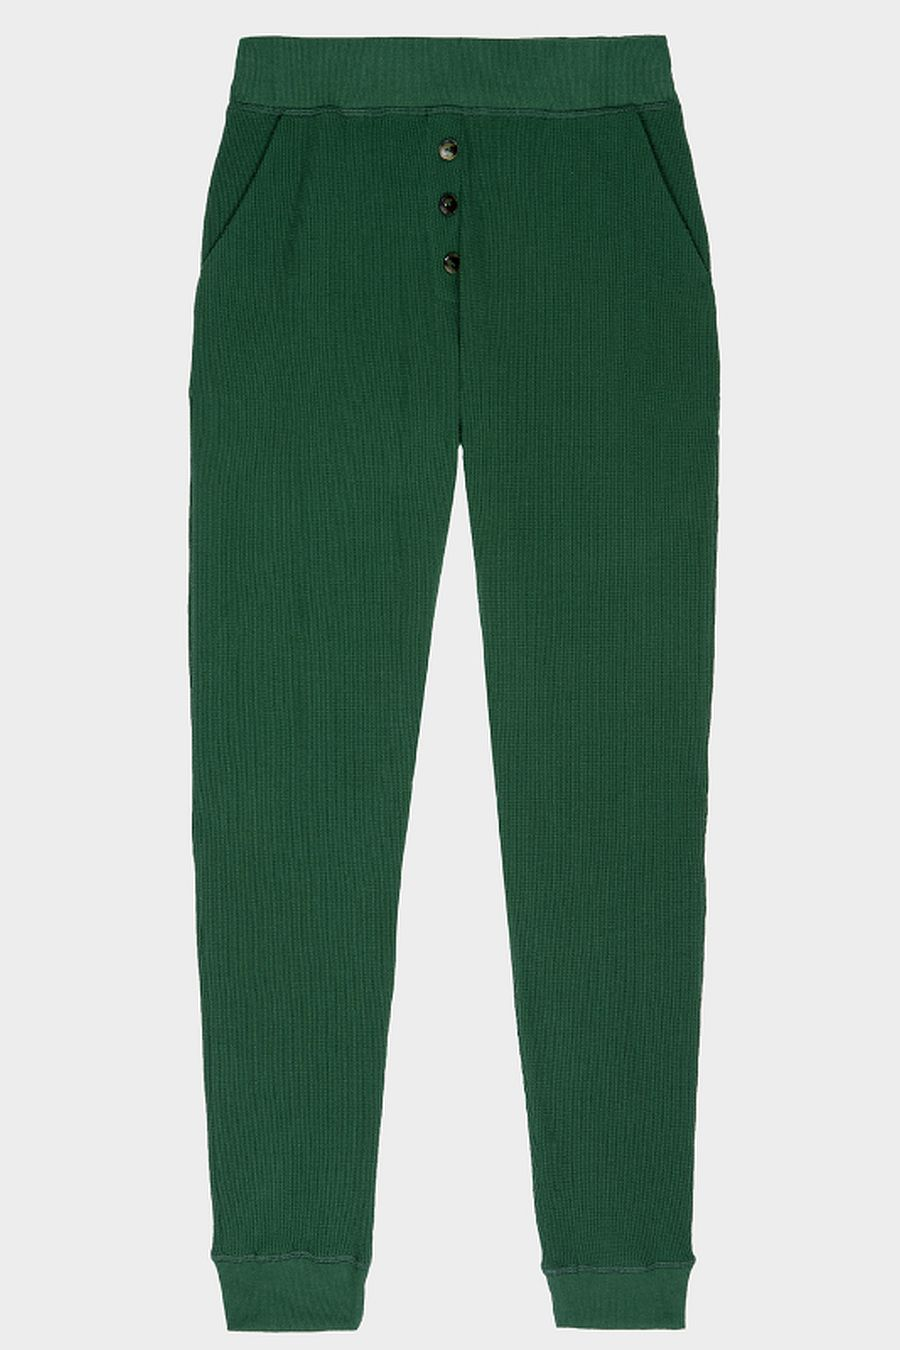 DONNI. Thermal Henley Sweatpant - Hunter